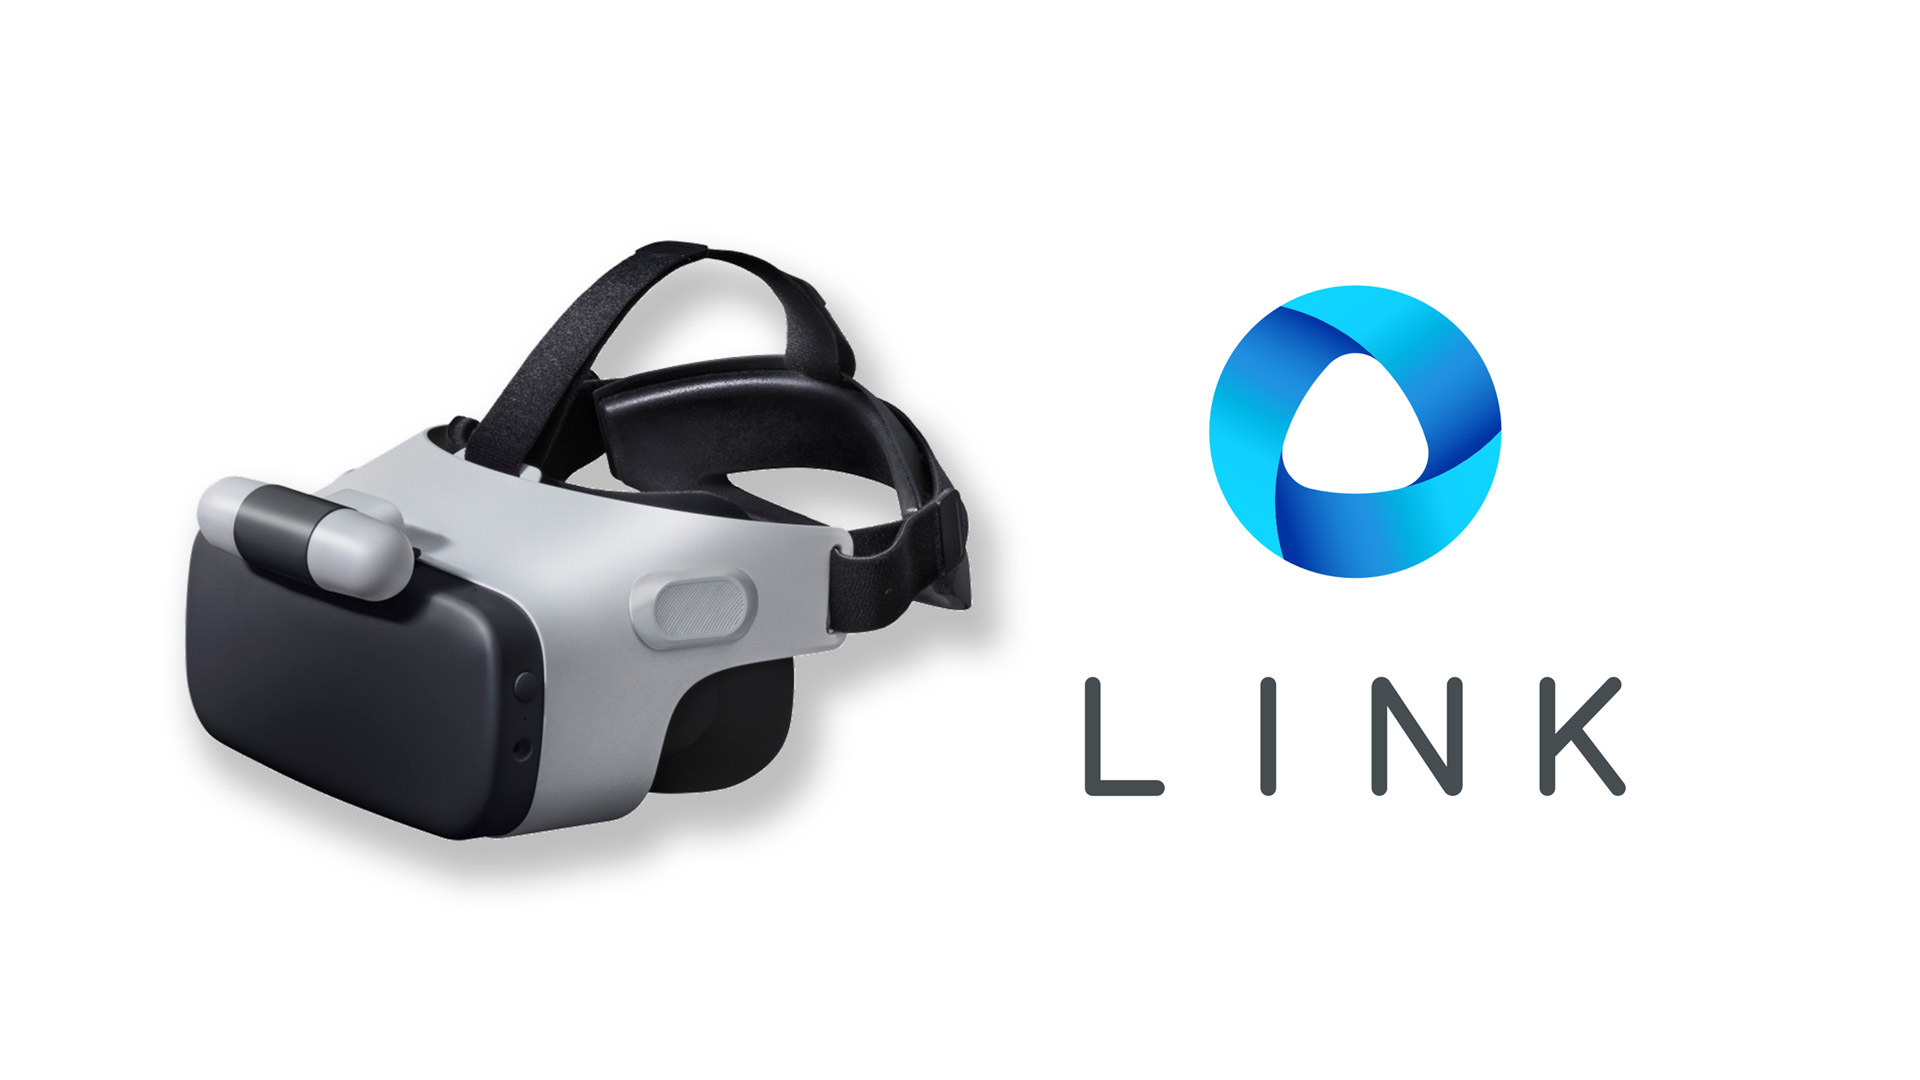 HTC Link promises a high-end VR experience with a smartphone